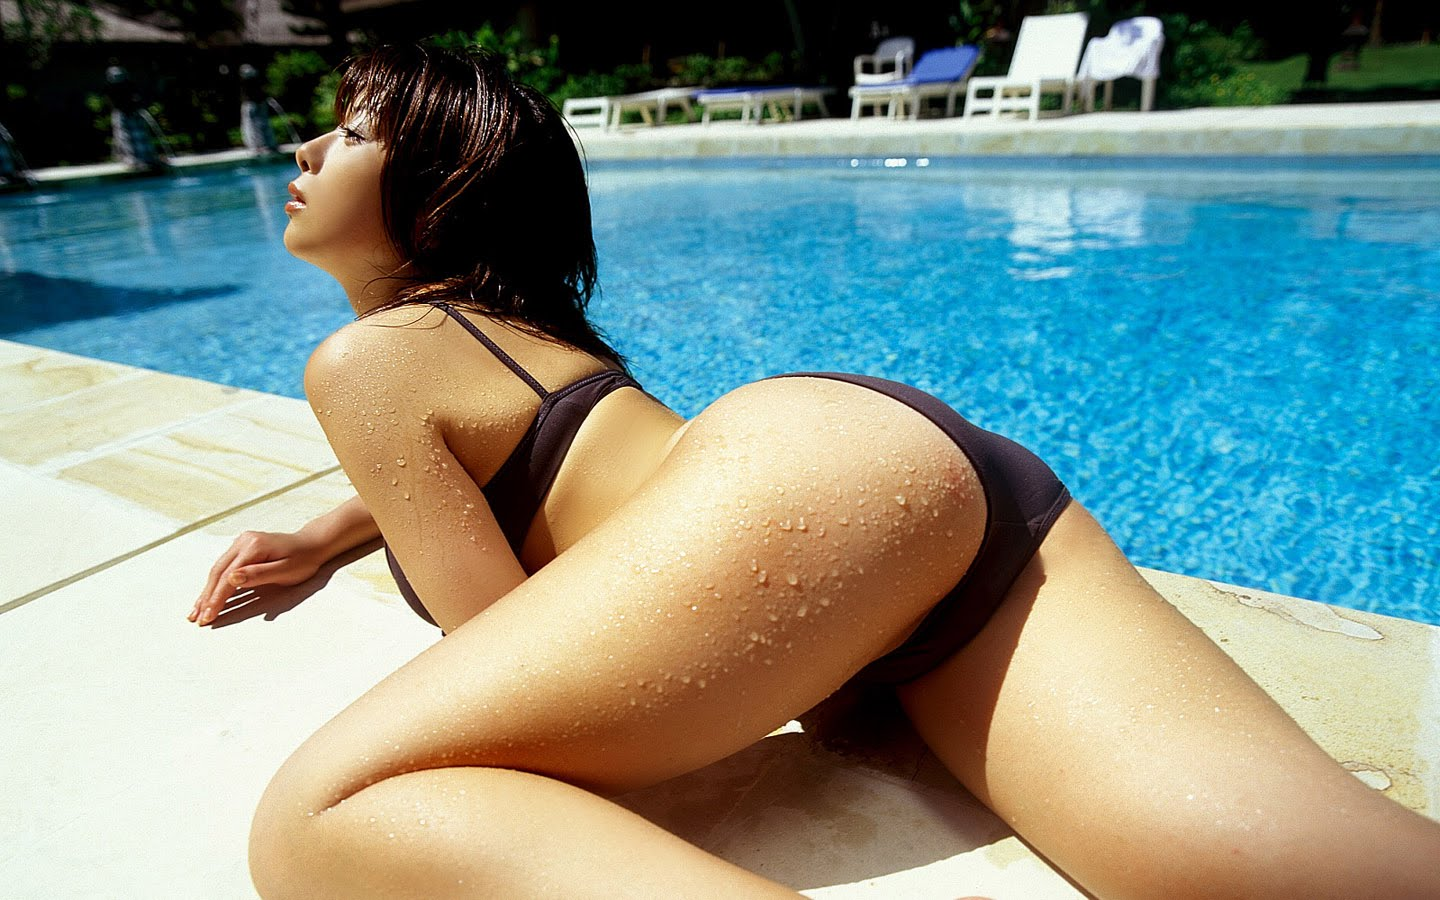 High Quality Hollywood Top Sexy Ass Actress Wallpapers | Celebrity Gallery